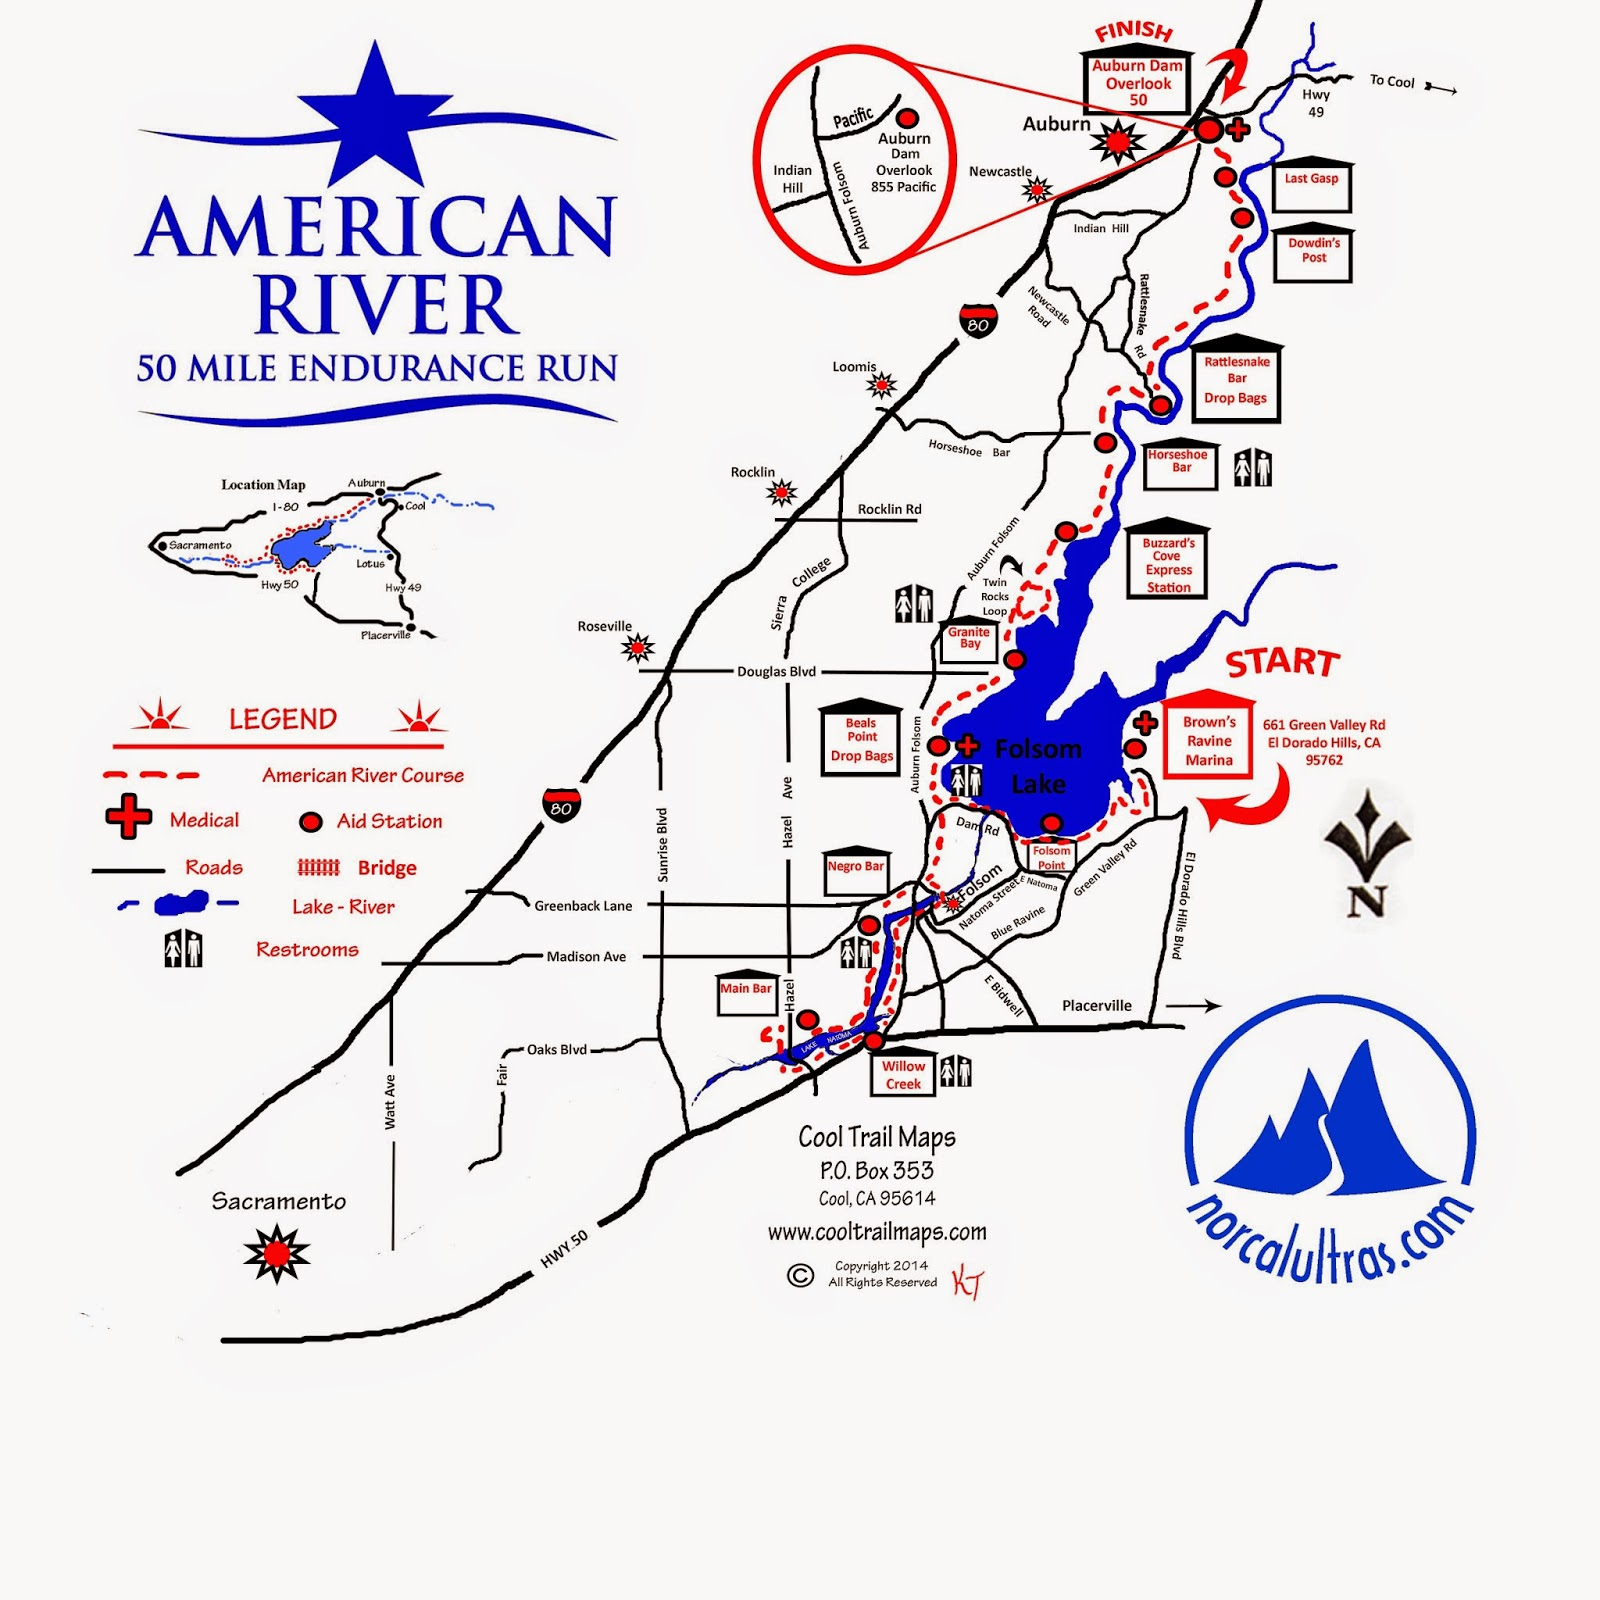 http://ar50mile.com/docs/Official-Course-Map-AR50-2014.pdf